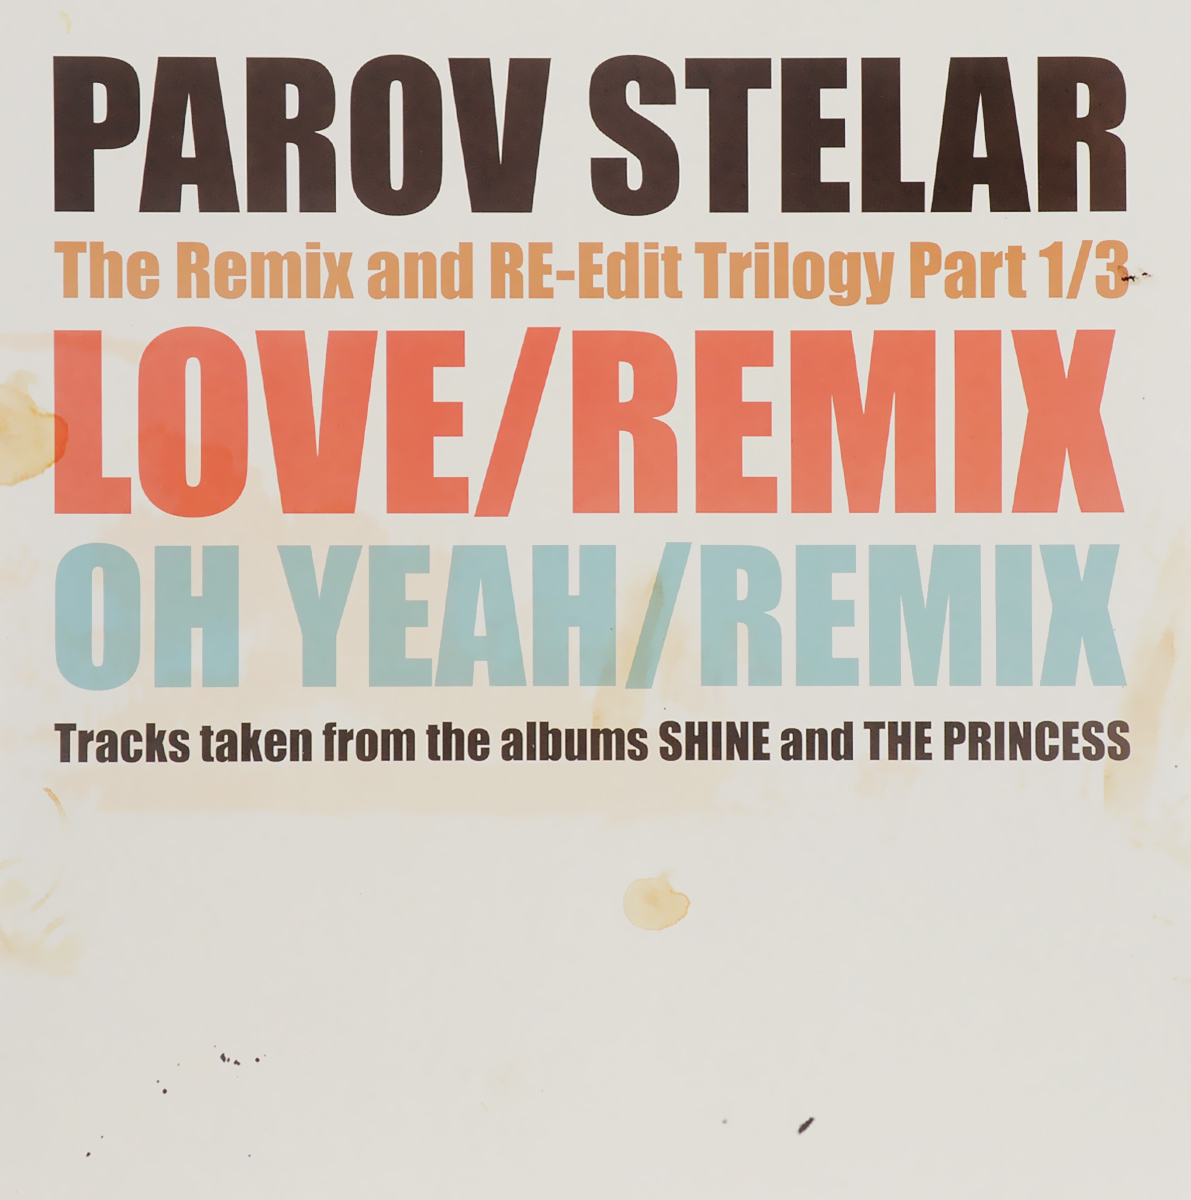 parov stelar parov stelar la fete ep lp Parov Stelar Parov Stelar. The Remix And Re-Edit Trilogy Part 1/3 (LP)